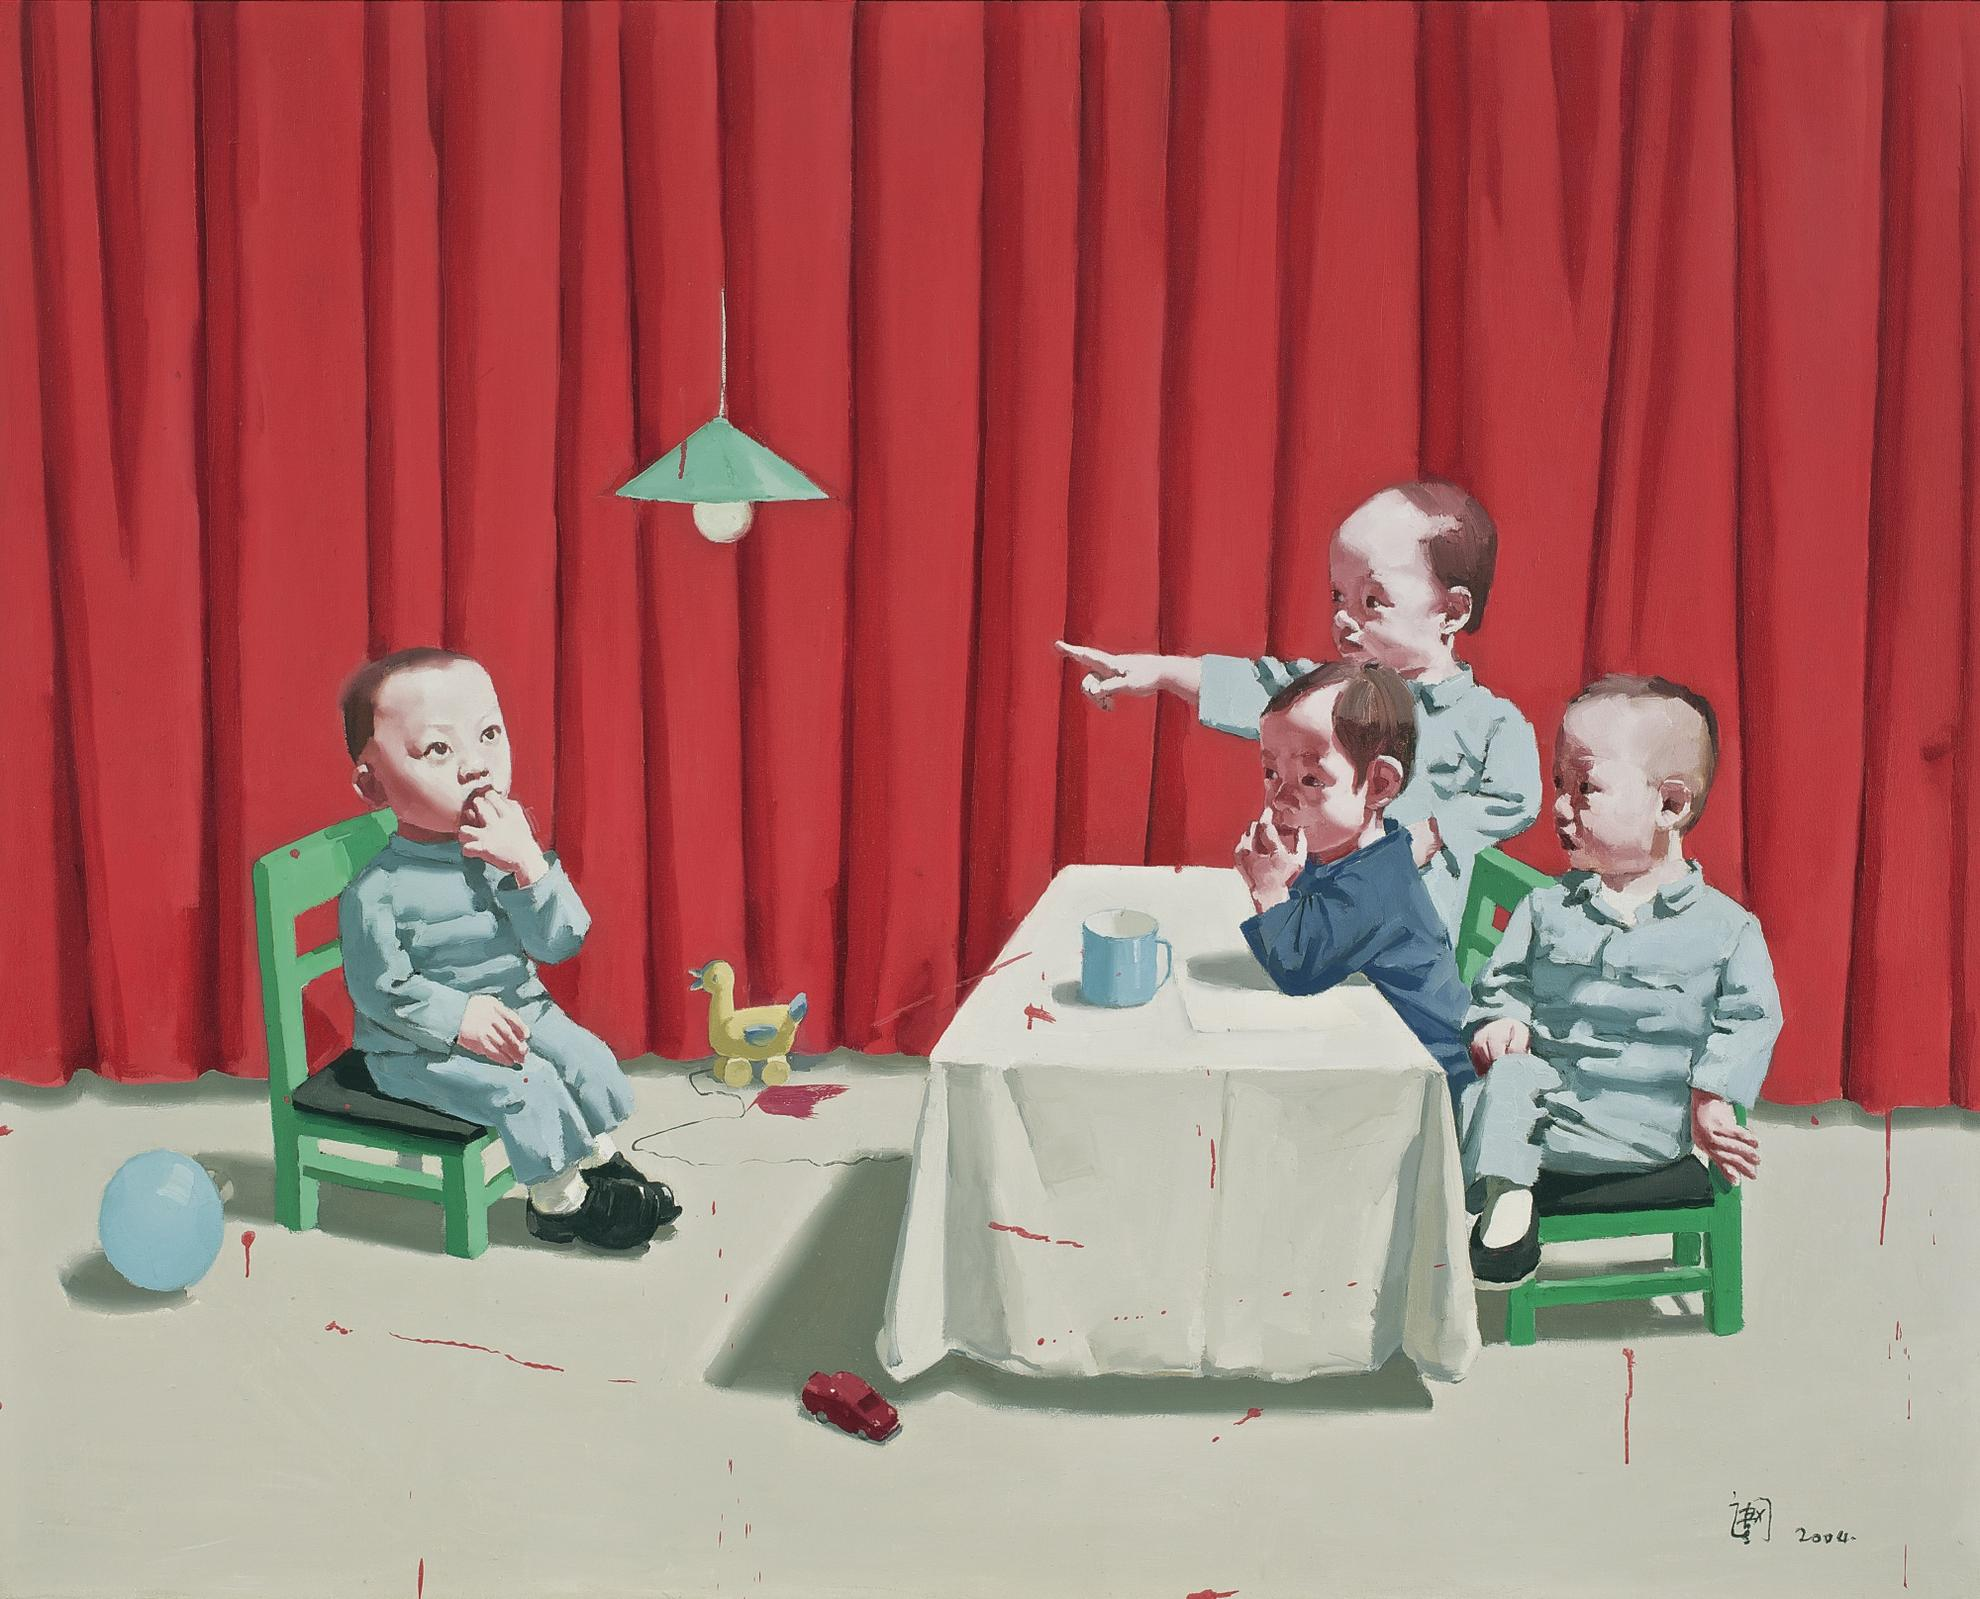 Tang Zhigang-The Era Of Children-2004